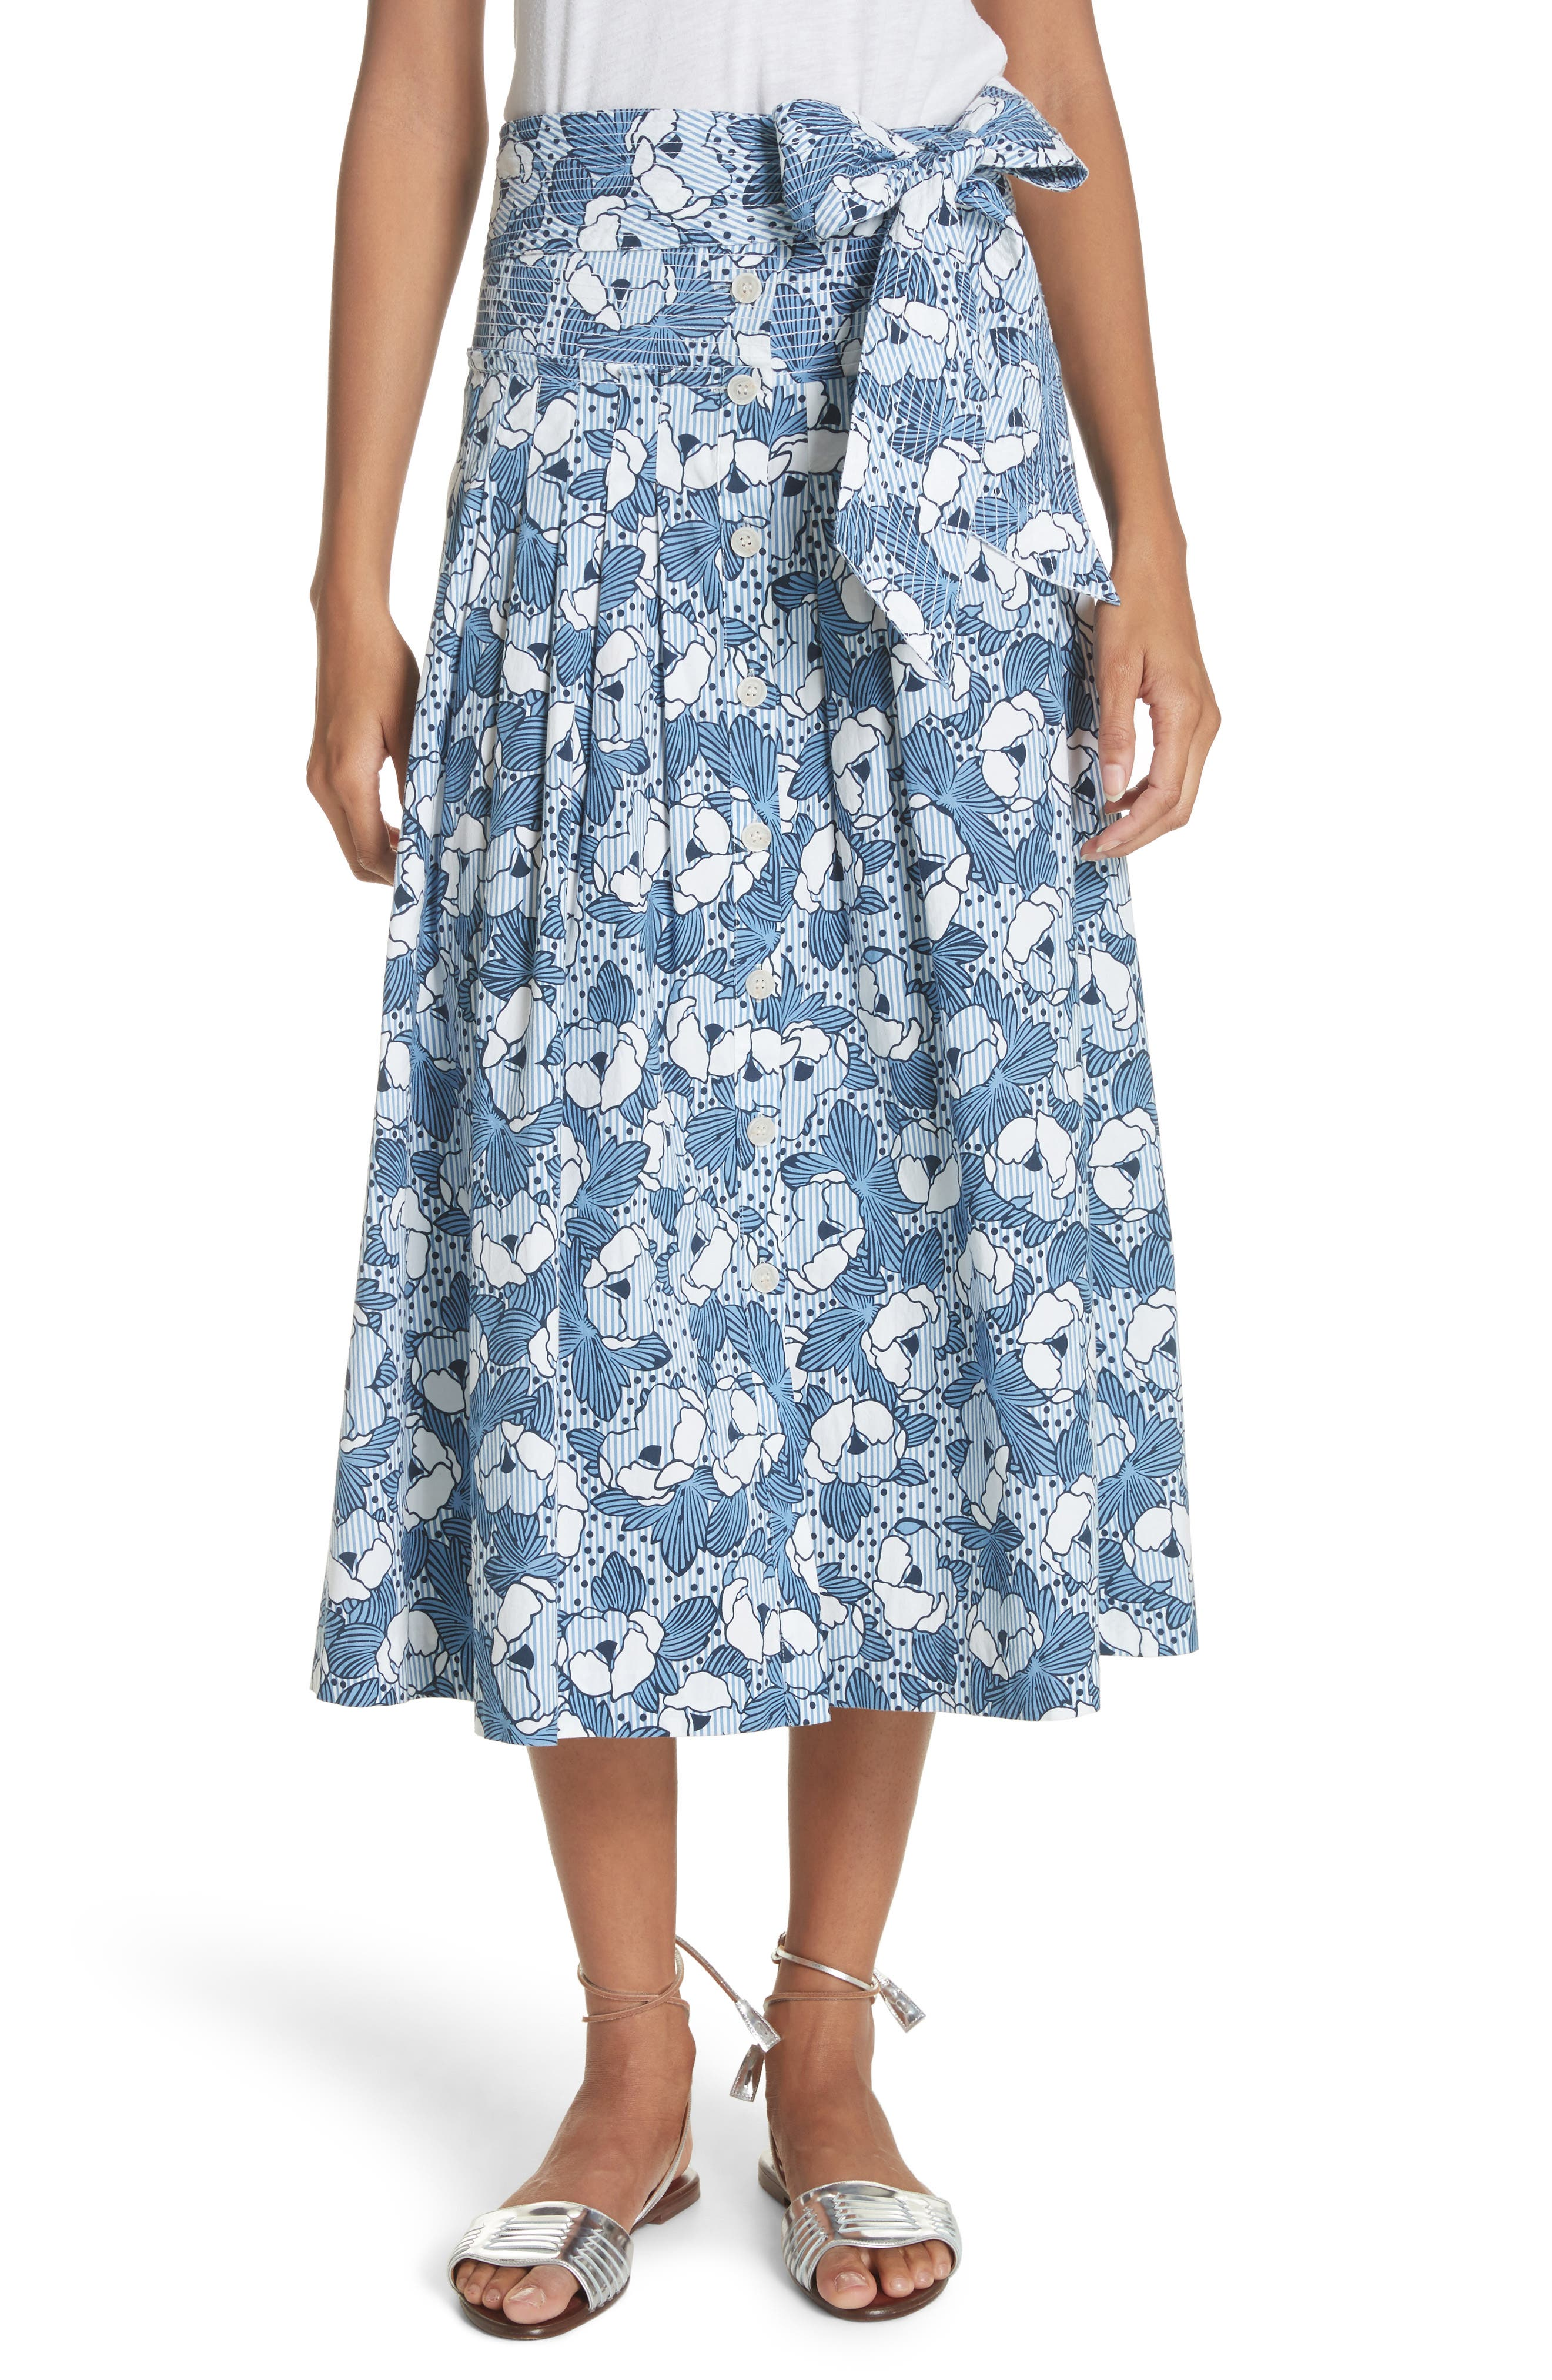 Caralina Floral Print Midi Skirt,                         Main,                         color, Blue/ White